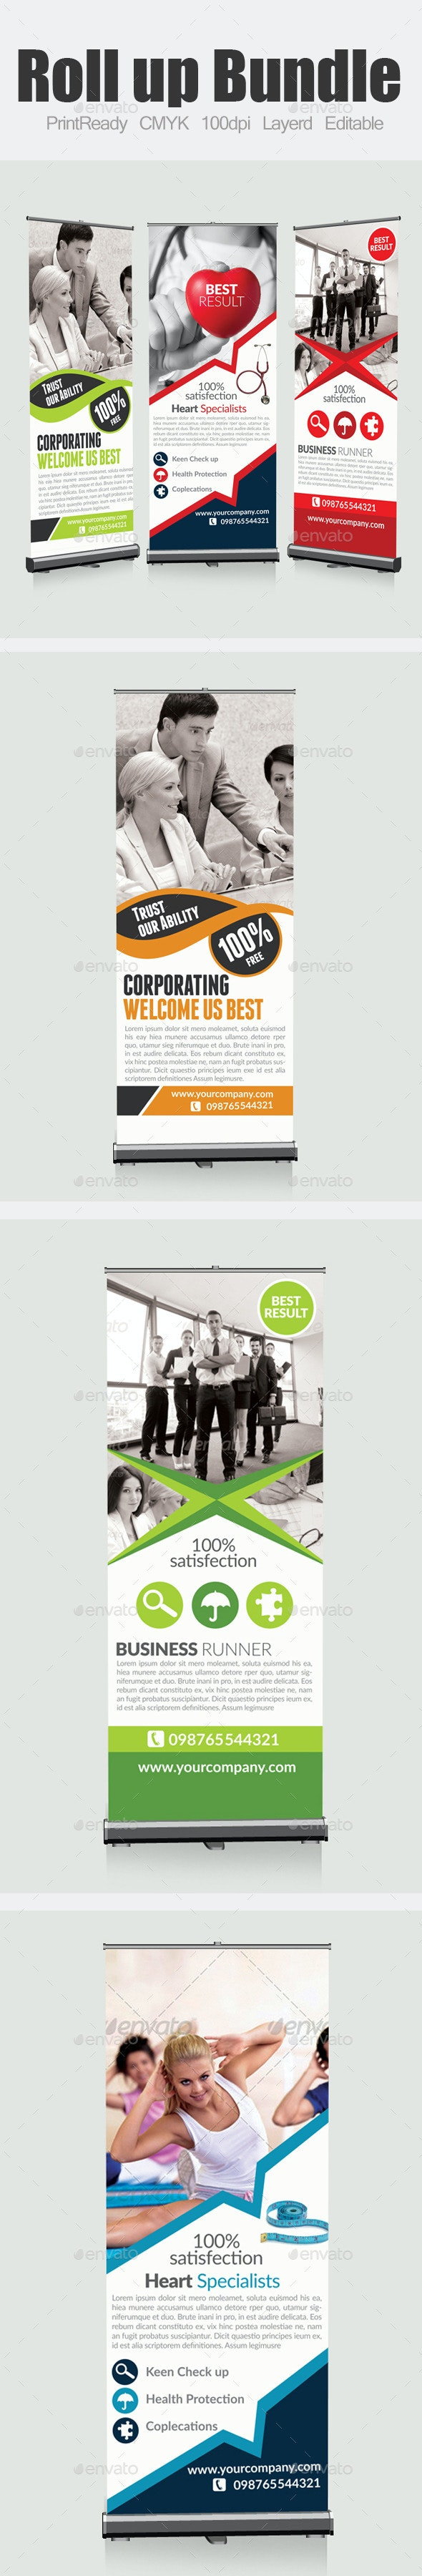 Multi Use Roll up Banners Bundle - Signage Print Templates